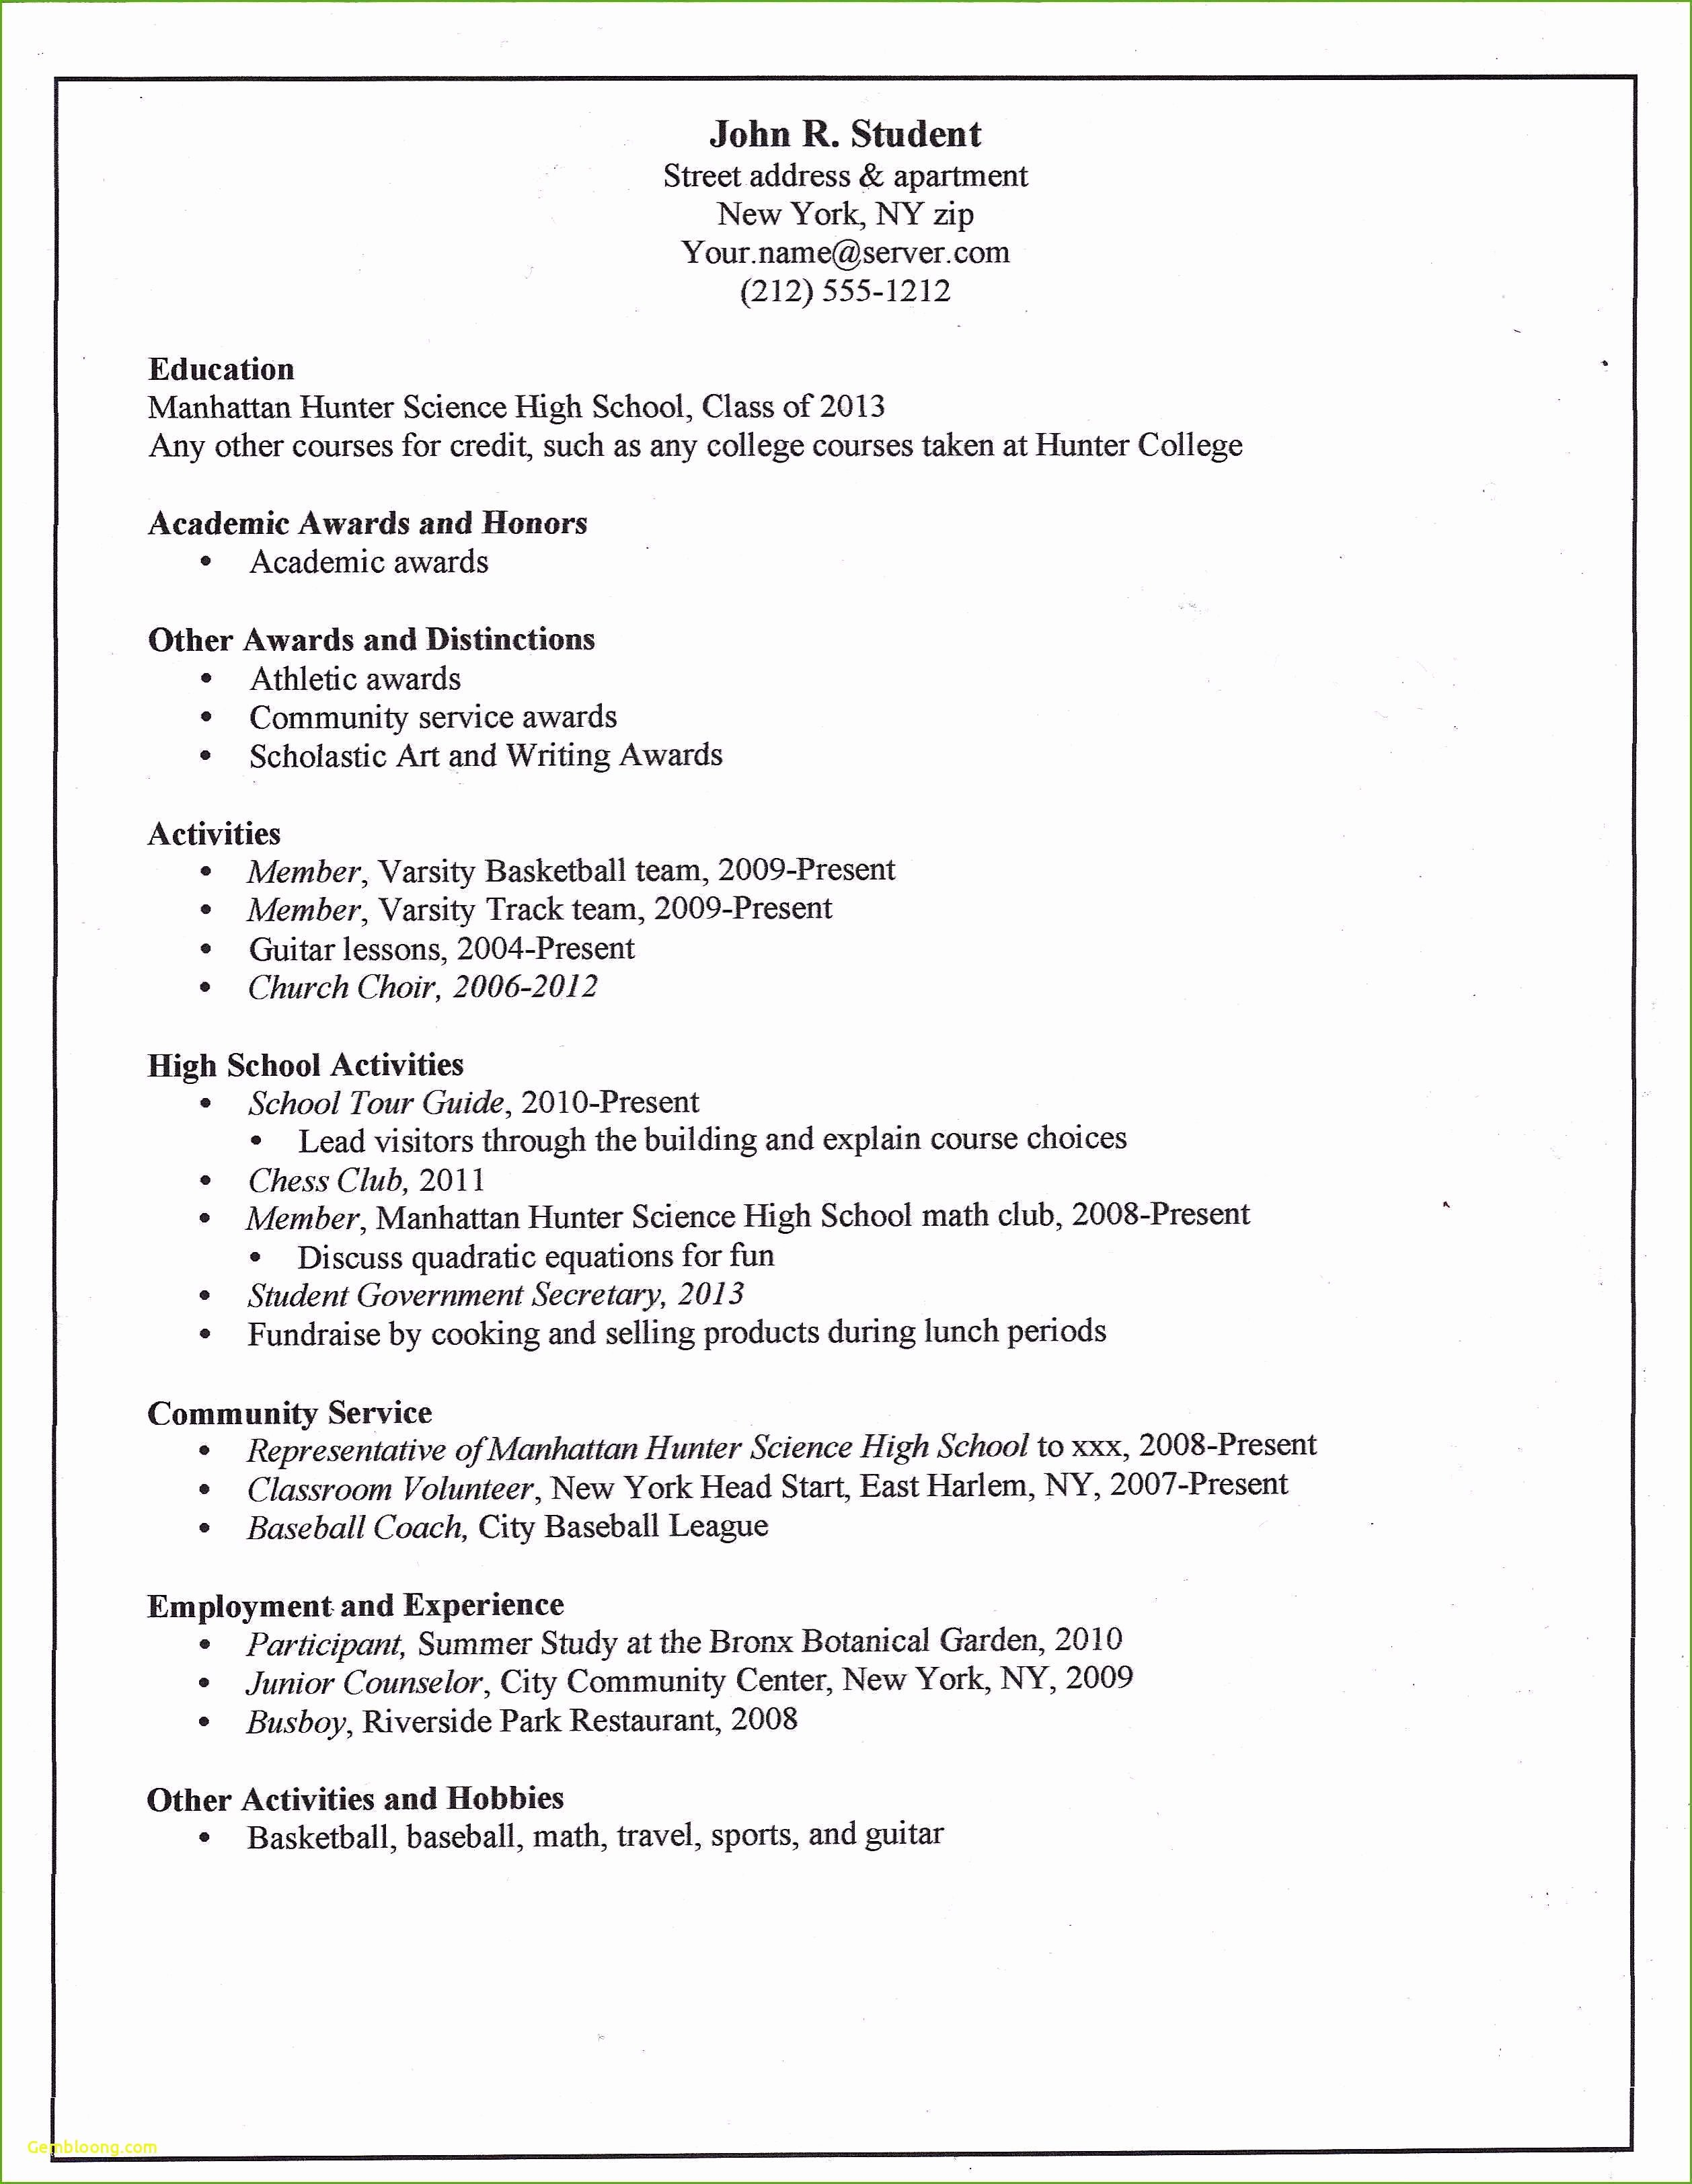 Upfront Magazine Worksheet Answers Elegant Upfront Magazine Worksheet Answers Cramerforcongress